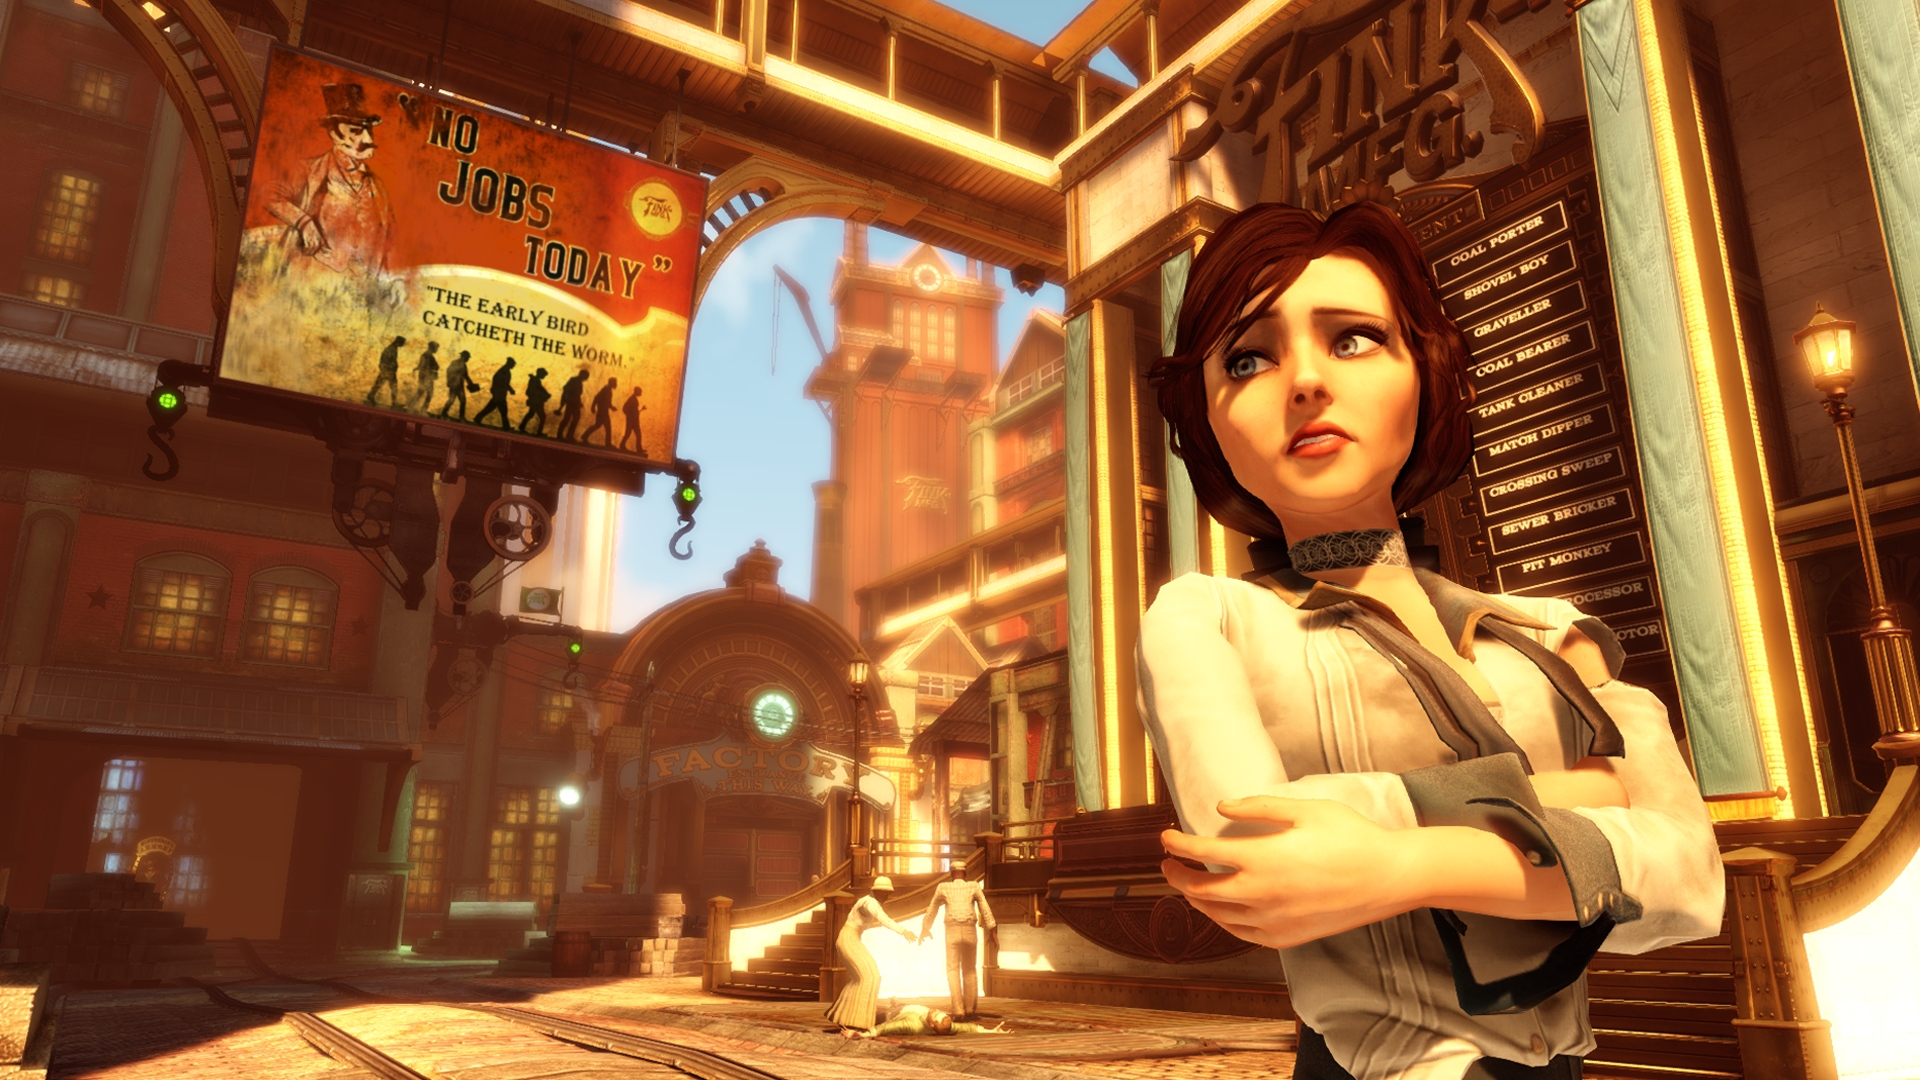 All BioShock Infinite Pre-Order Rewards on Steam Unlocked Including